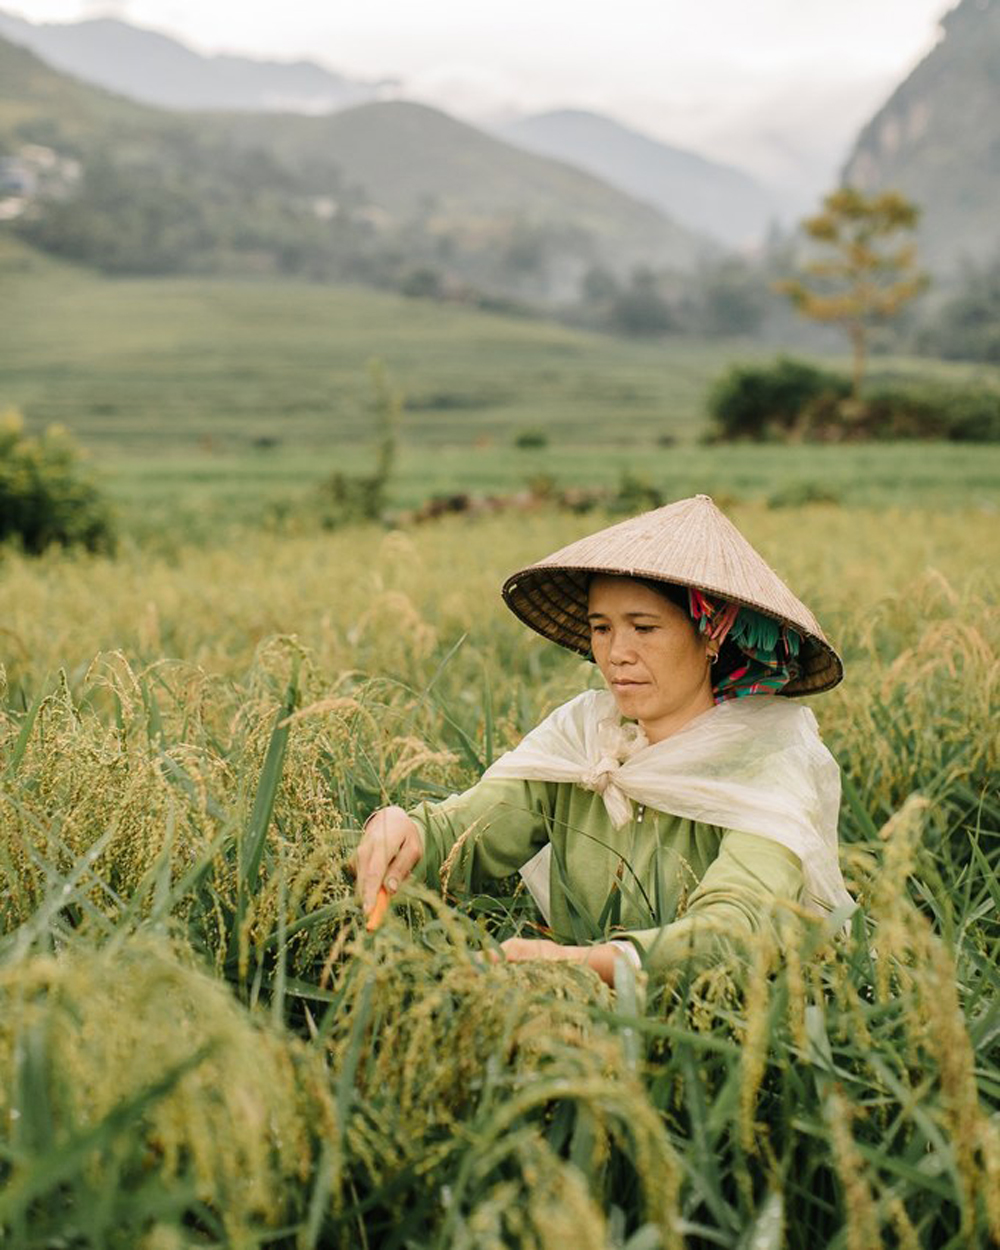 Life in northern Vietnam, Belgian travel photographer, Kevin Faingnaert, Southeast Asian gem, Vietnam, popular destination